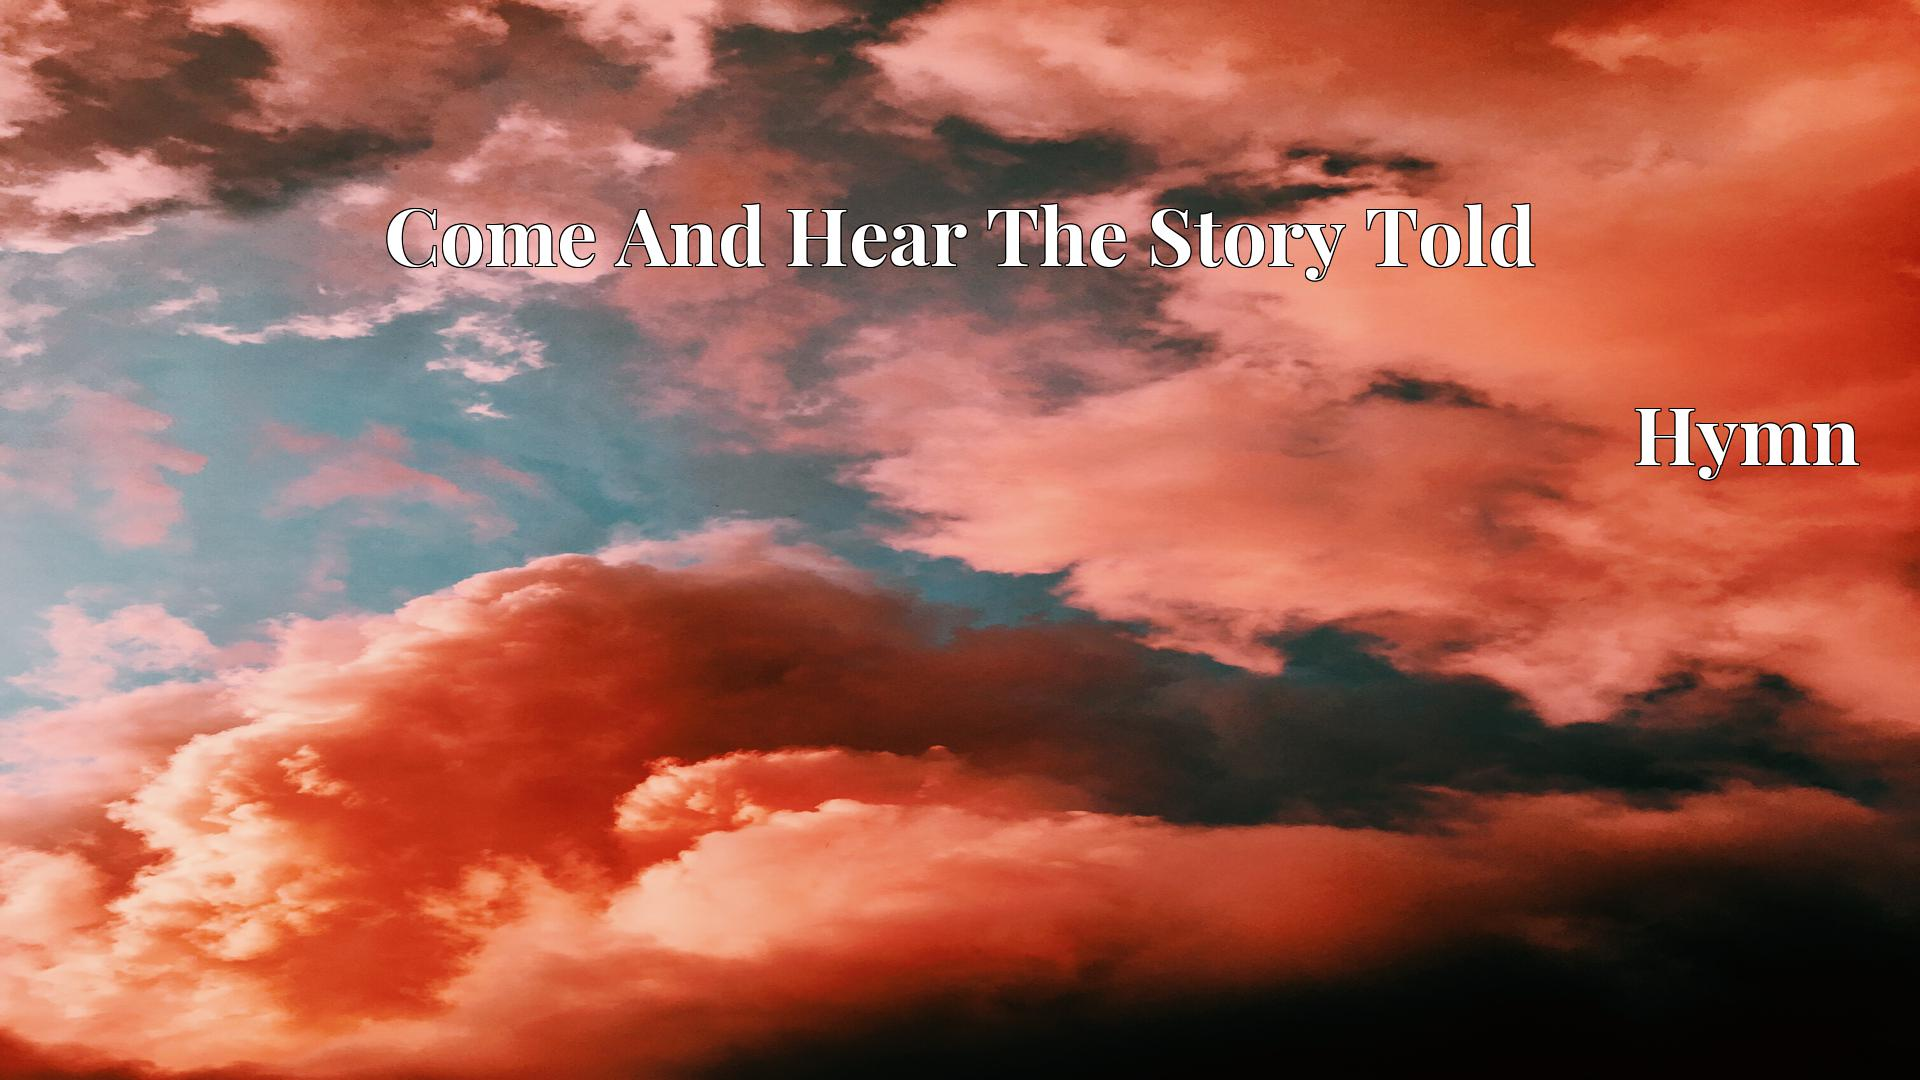 Come And Hear The Story Told - Hymn